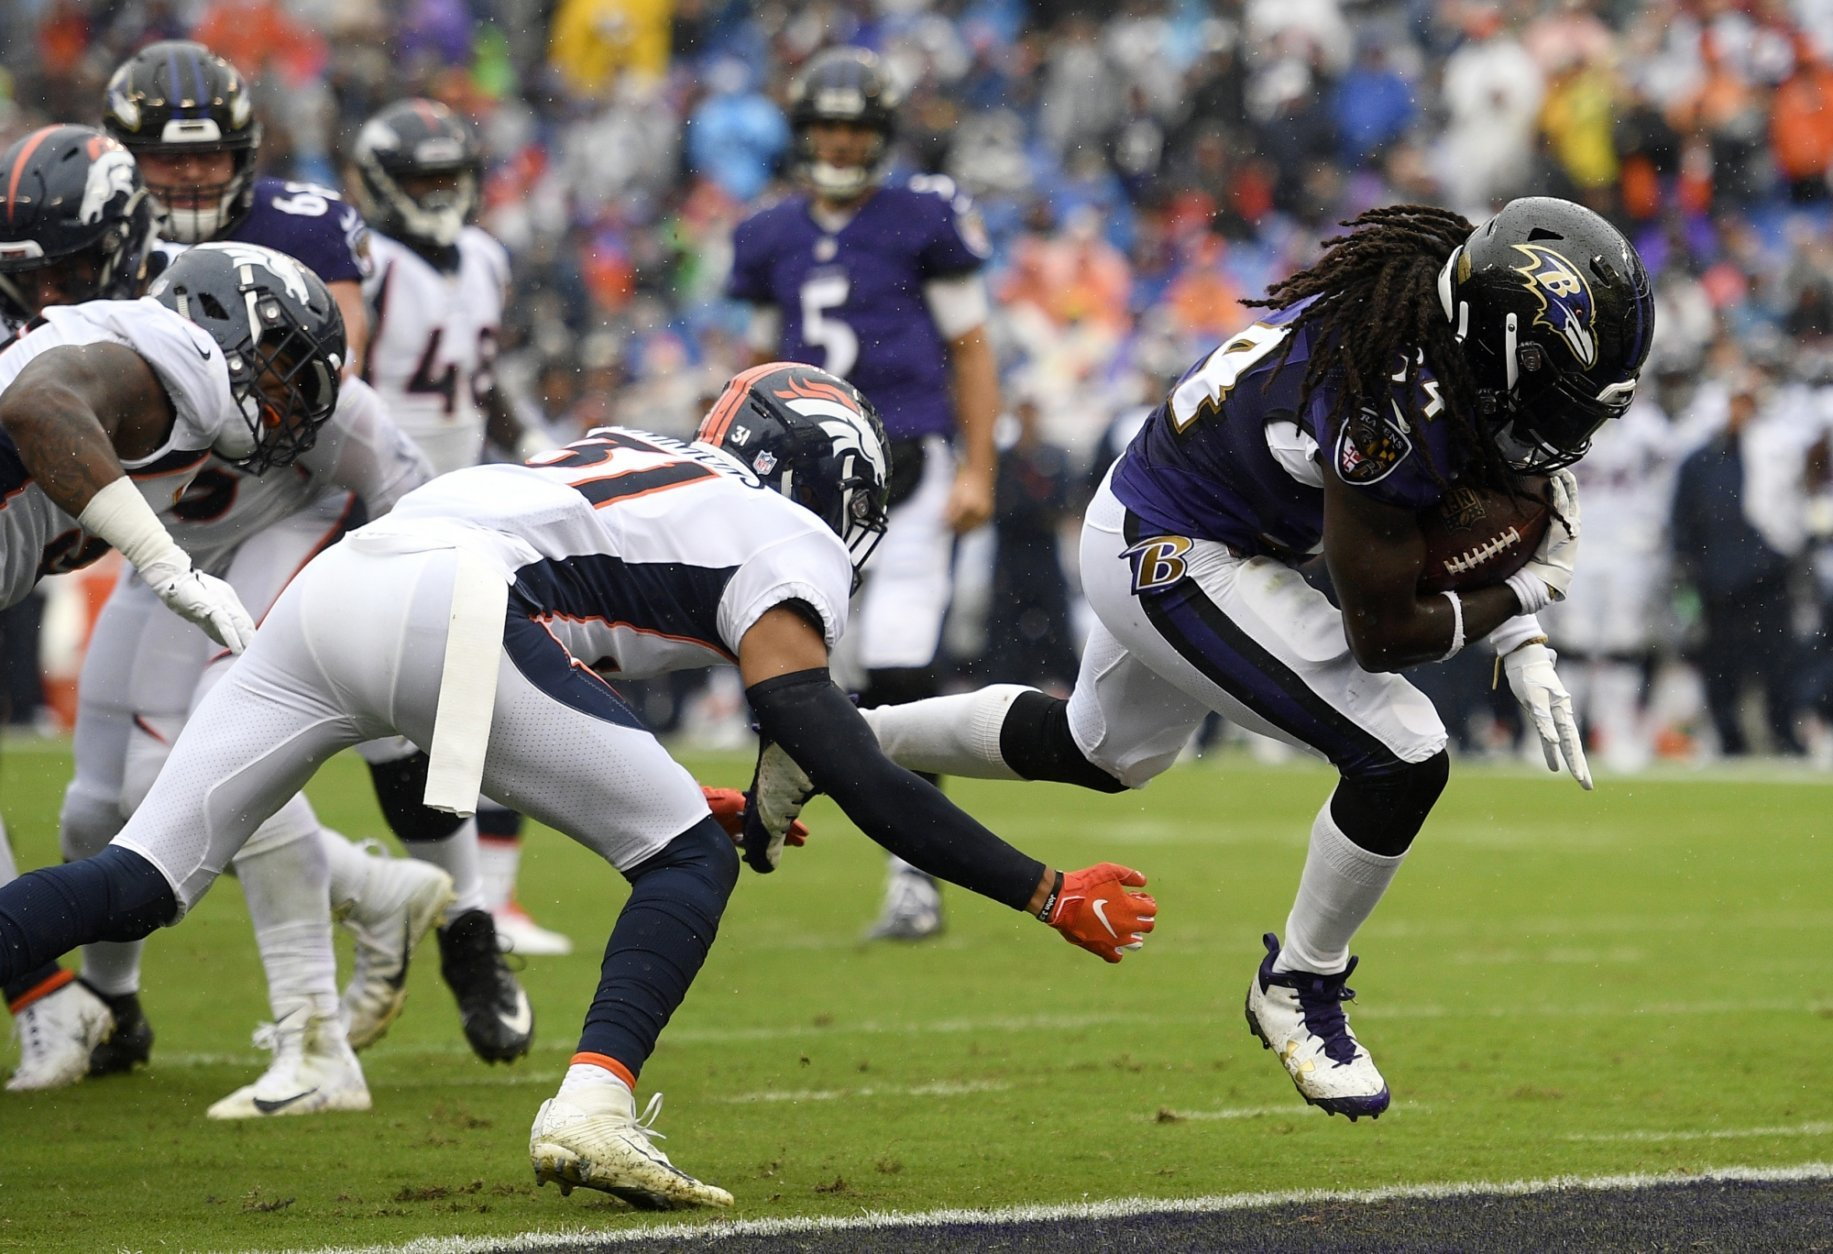 Baltimore Ravens running back Alex Collins, right, rushes past Denver Broncos defensive back Justin Simmons for a touchdown in the first half of an NFL football game, Sunday, Sept. 23, 2018, in Baltimore. (AP Photo/Nick Wass)